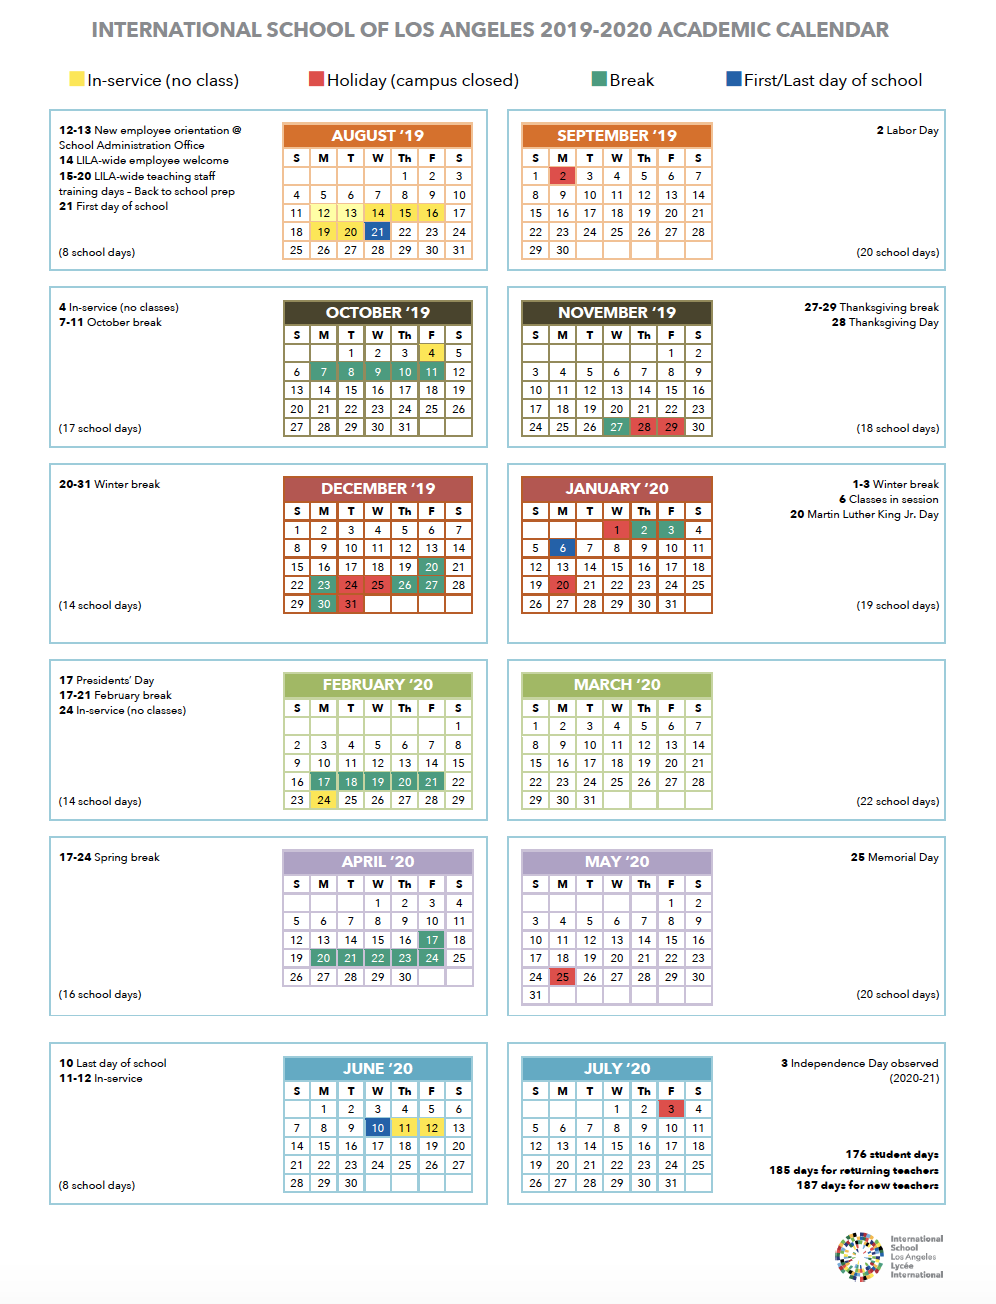 Calendar | International School Of Los Angeles With Diamond Bar High School Calendar 2021 2020